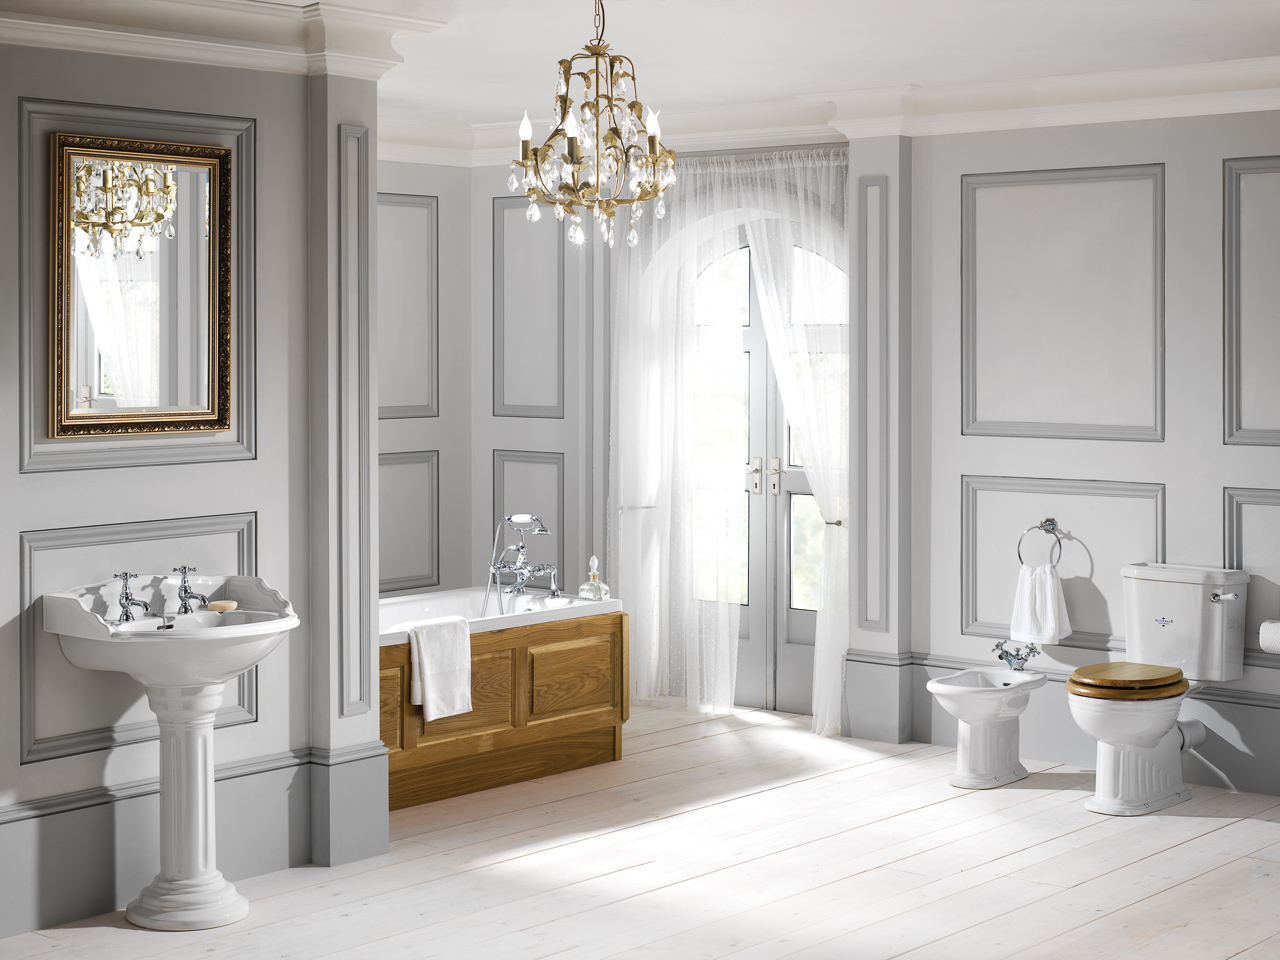 Silverdale Bathrooms: Belgravia Roomset